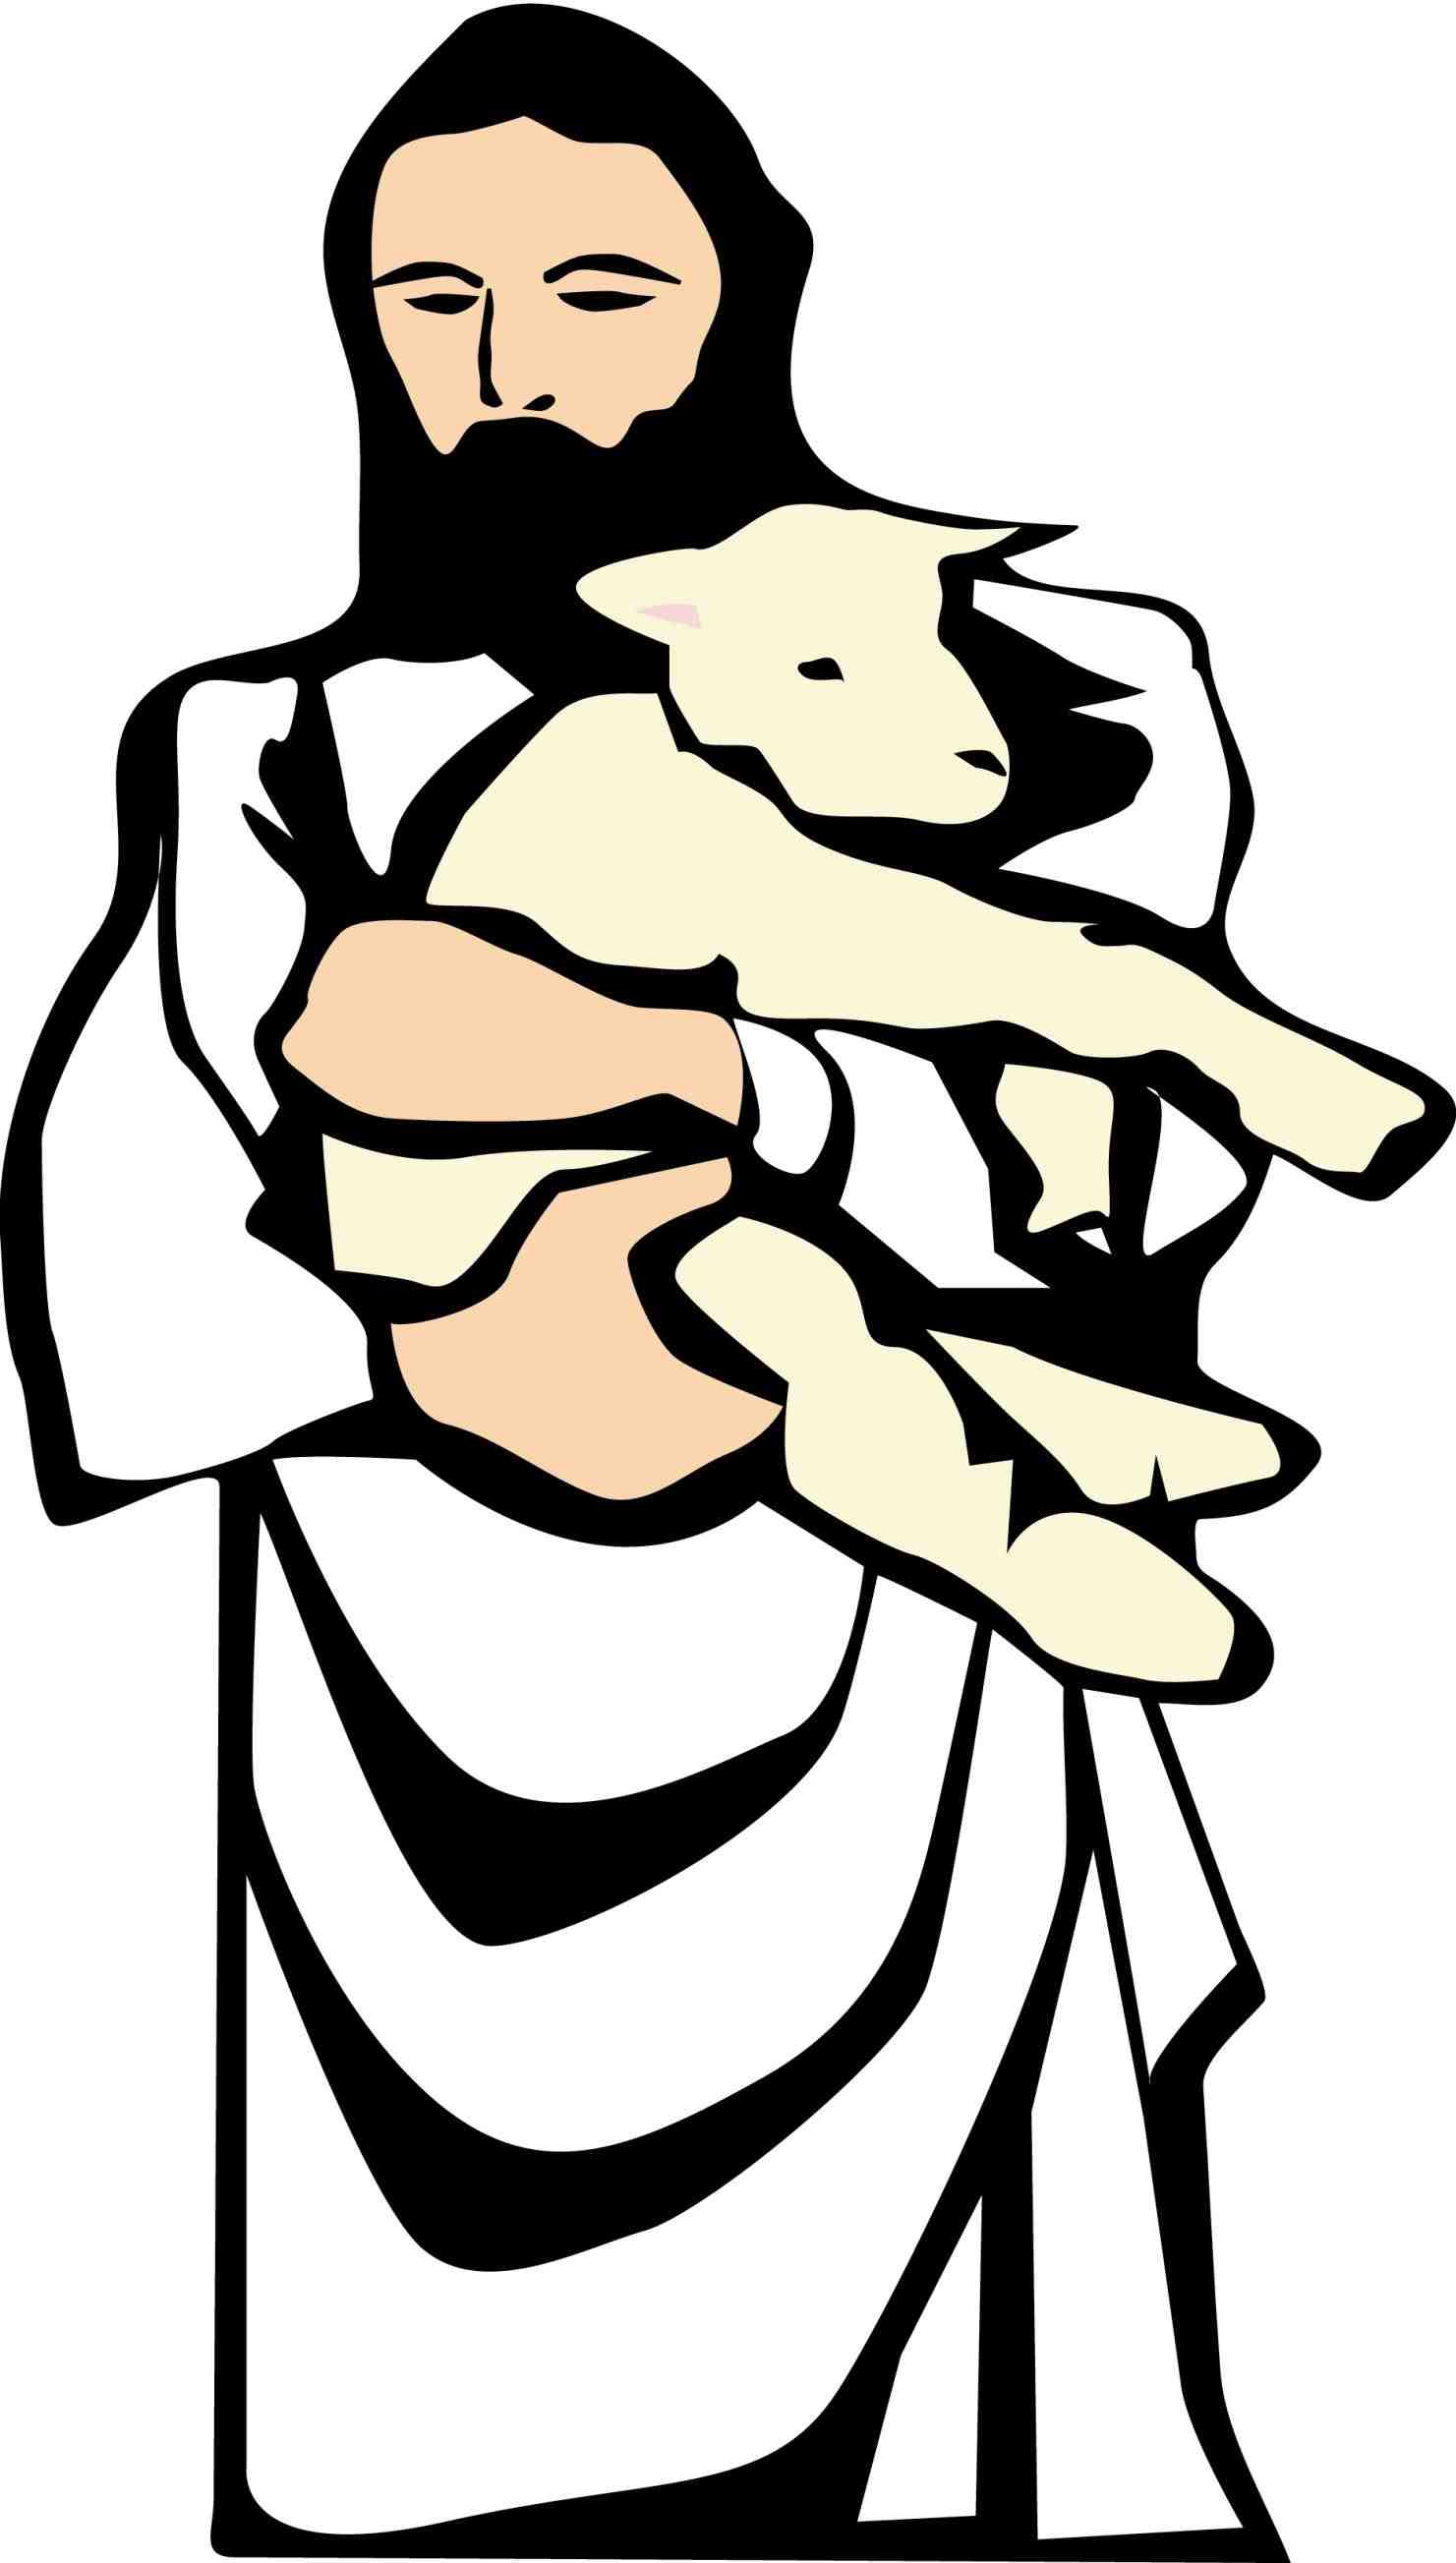 1481x2607 Lamb Clip Art Nativity Scene Png Xtras Nativity Christmas